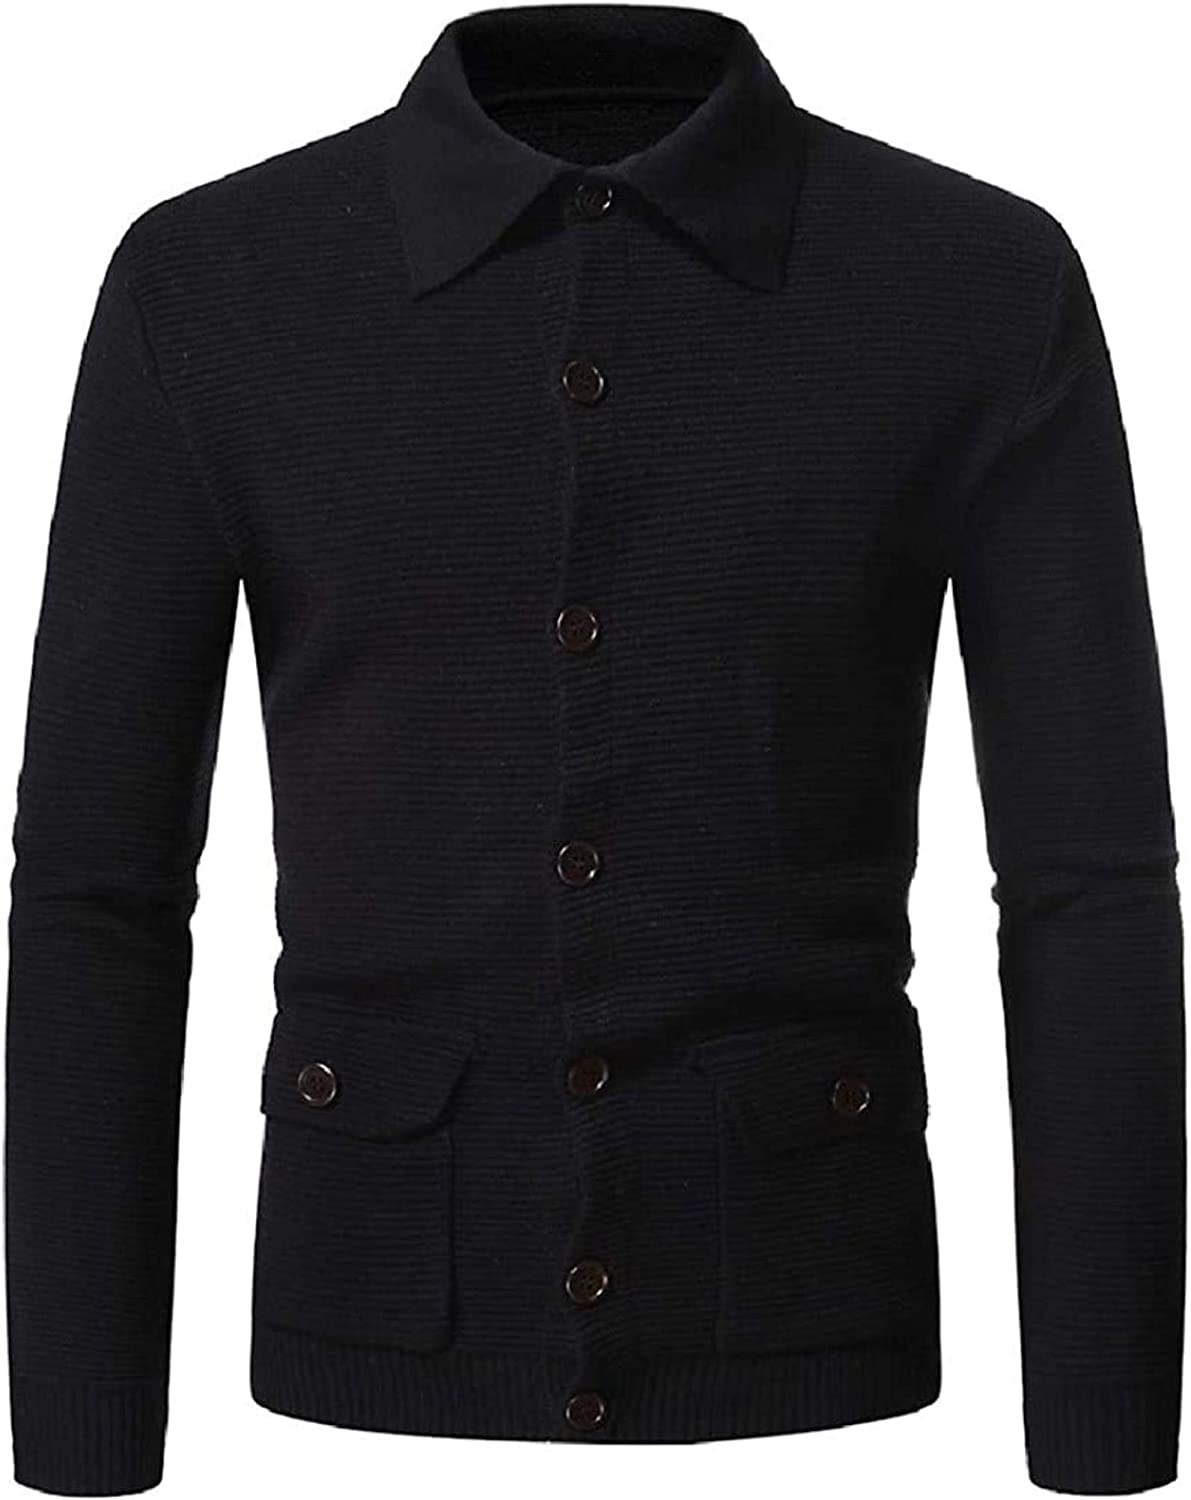 Men's Knit Slim Solid Color Pockets Button Fashion Cardigan Sweater